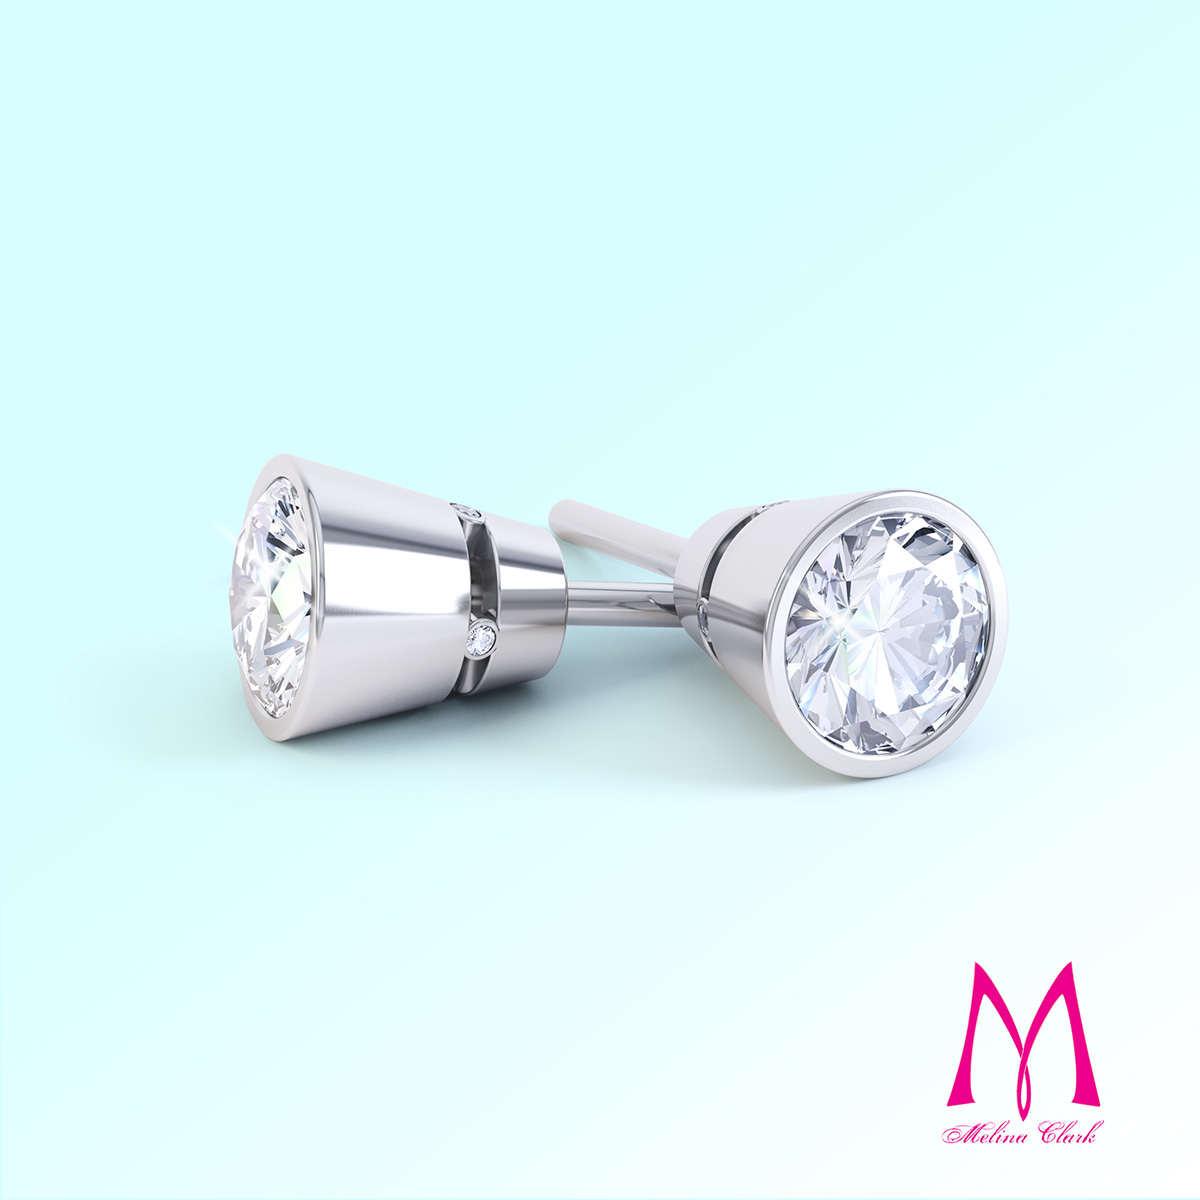 MC_Earring_4002.jpg